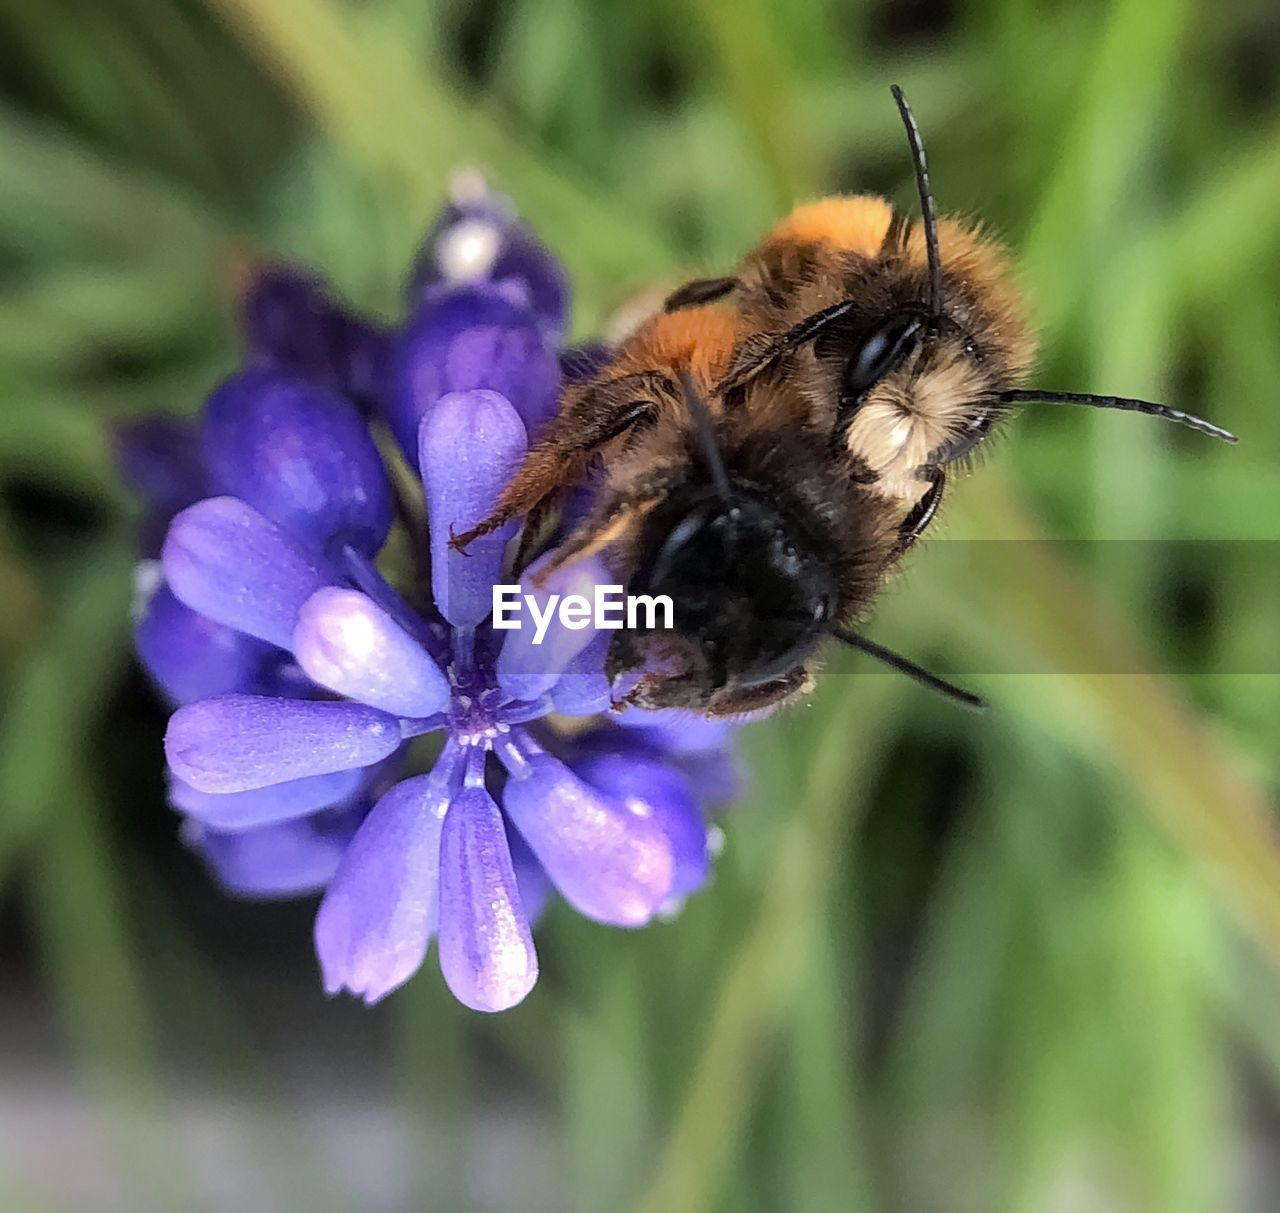 flower, flowering plant, animal themes, invertebrate, one animal, insect, animal, plant, fragility, vulnerability, animals in the wild, animal wildlife, flower head, freshness, petal, beauty in nature, growth, close-up, bee, focus on foreground, pollination, no people, purple, bumblebee, animal wing